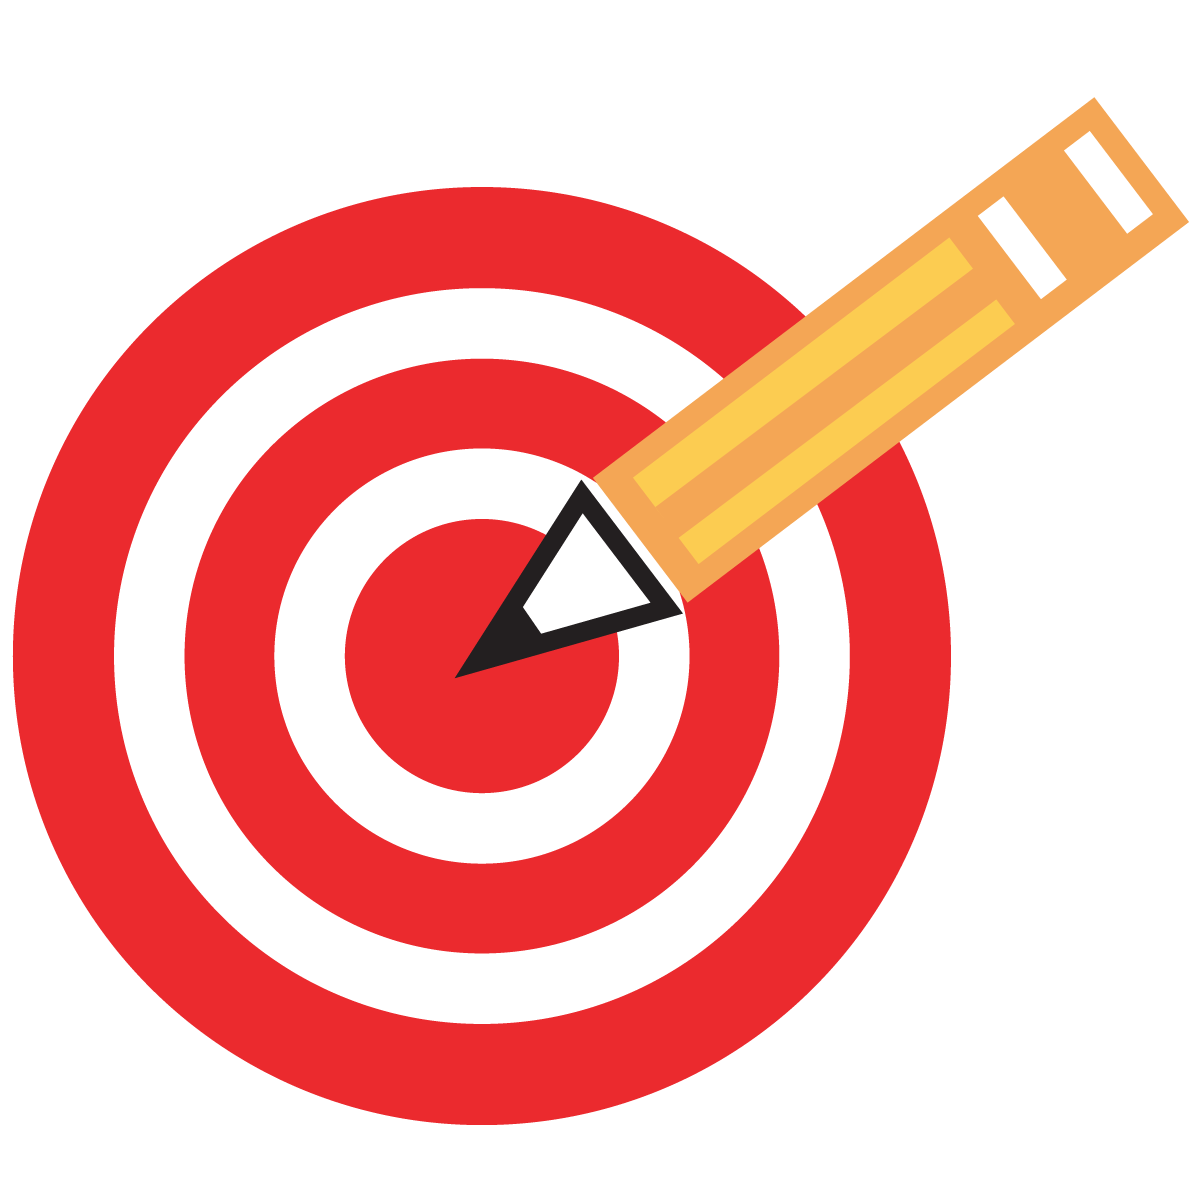 Target clipart learning #5